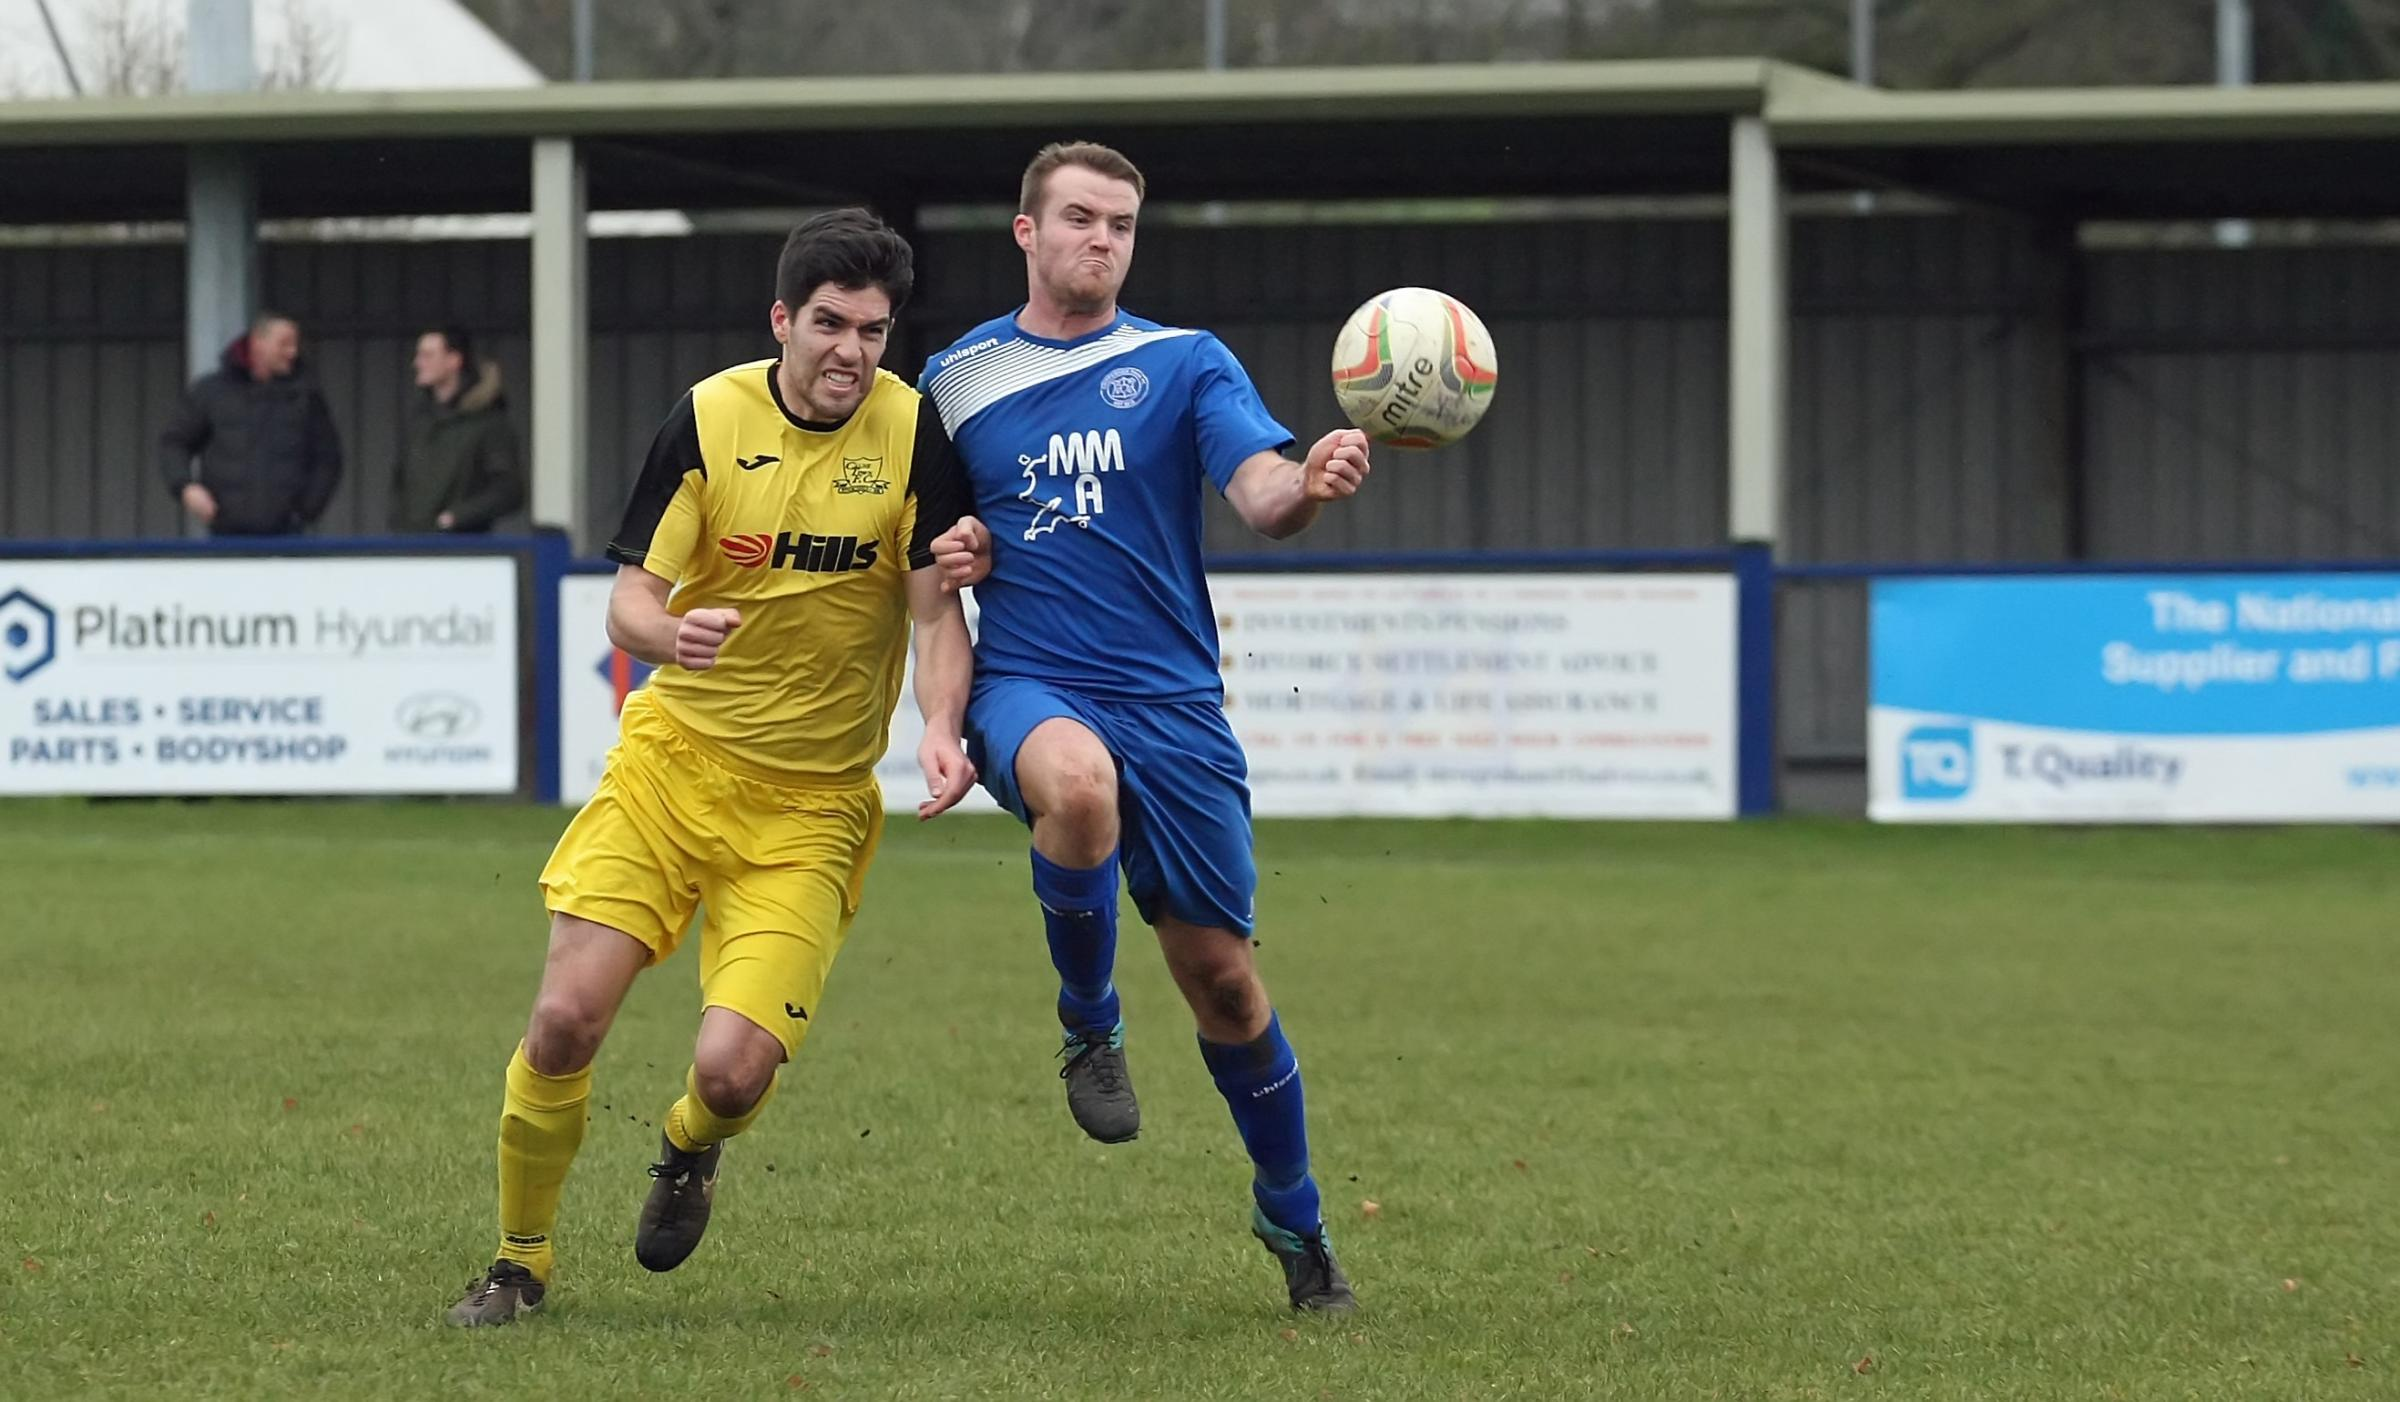 Calne's Matthew Bearne (yellow) and Chippenham Park's Dan Heavy challenge for the ball during today's derby at Hardenhuish Park (Picture: ROBIN FOSTER)